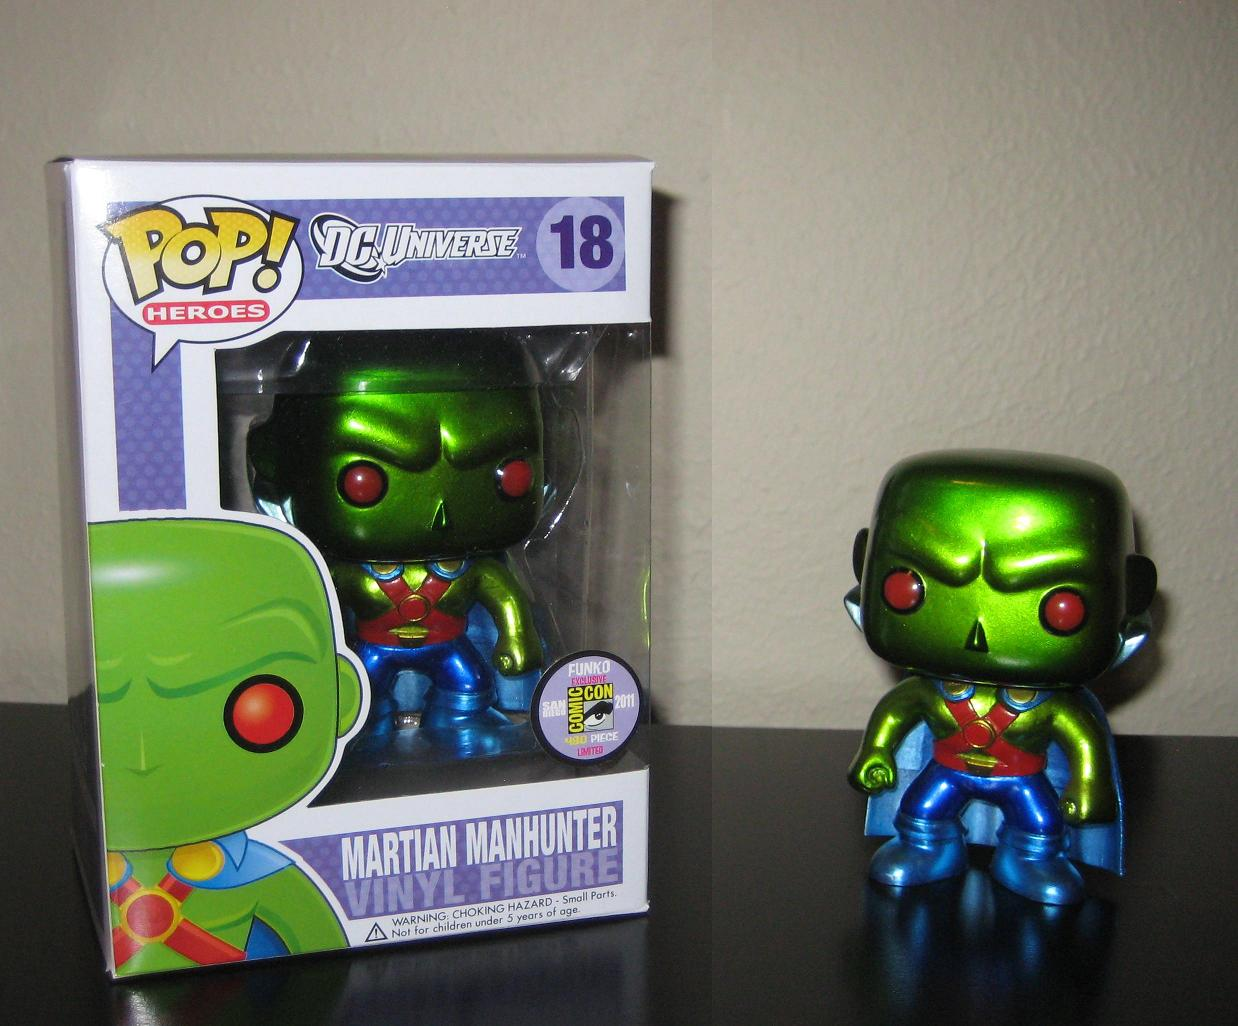 The Blot Says Sdcc 2011 Exclusive Martian Manhunter Metallic Funko Pop Comics Hellboy In Suit San Diego Comic Con Variant Dc Universe Heroes